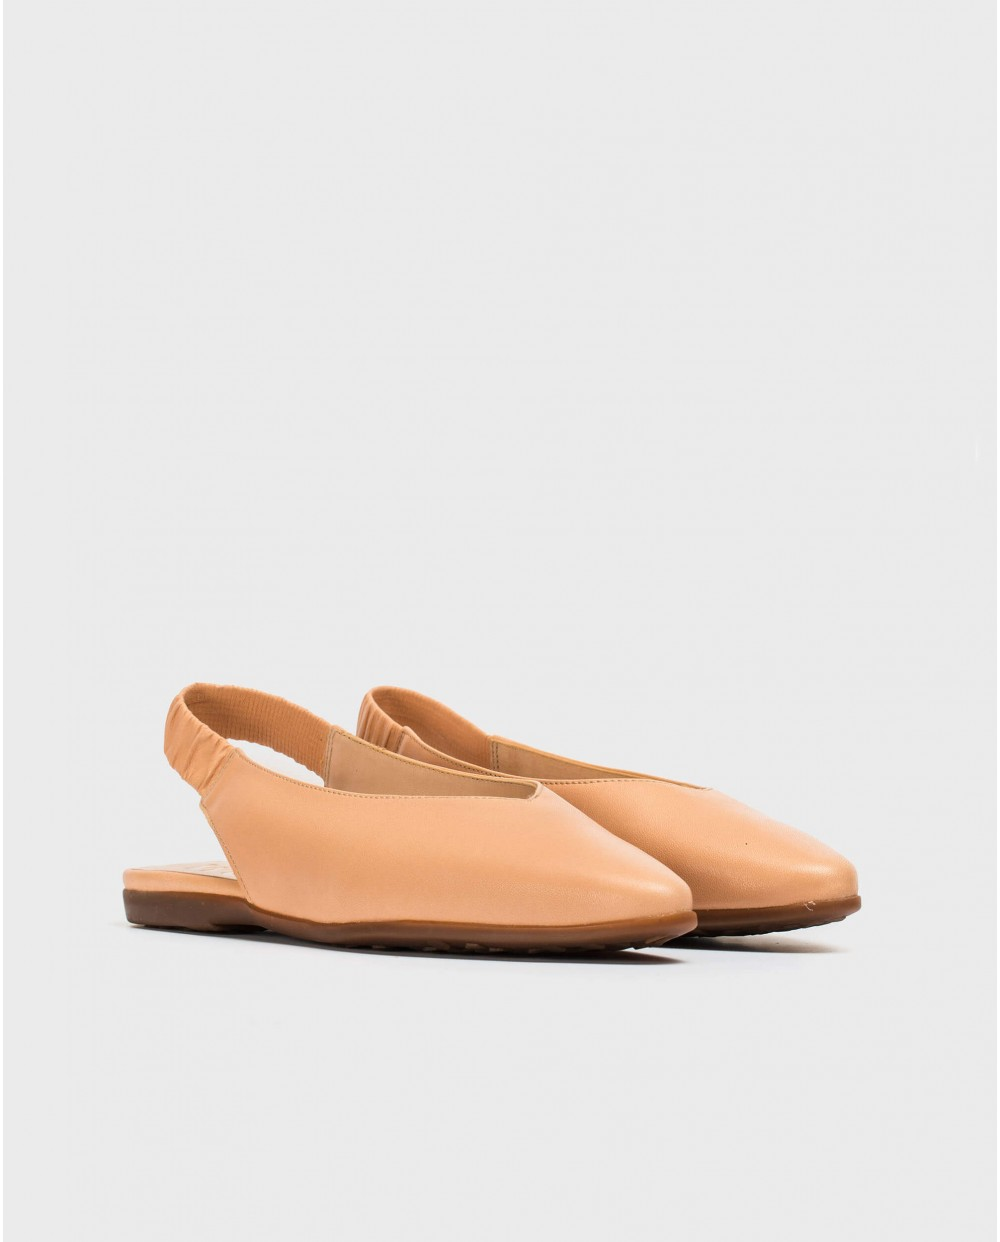 Wonders-Flat Shoes-Leather slingback sandal